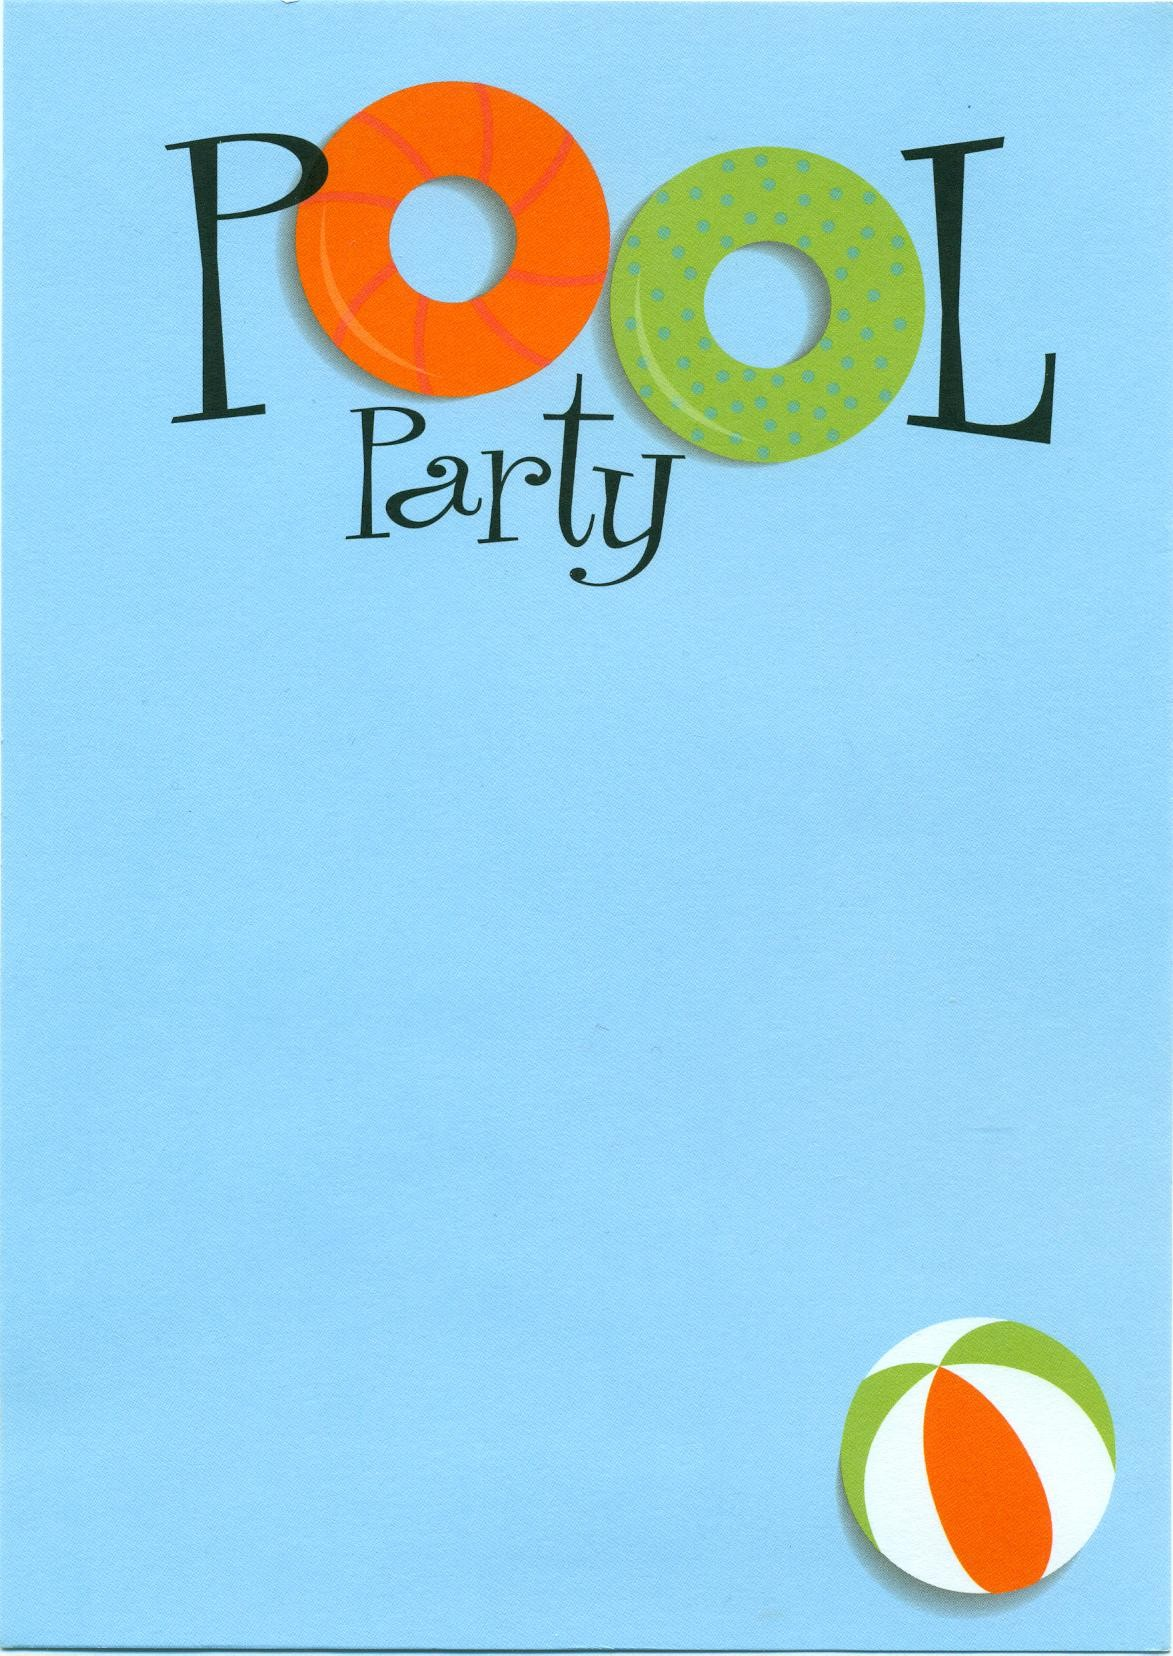 Pool Party Clipart & Pool Party Clip Art Images.